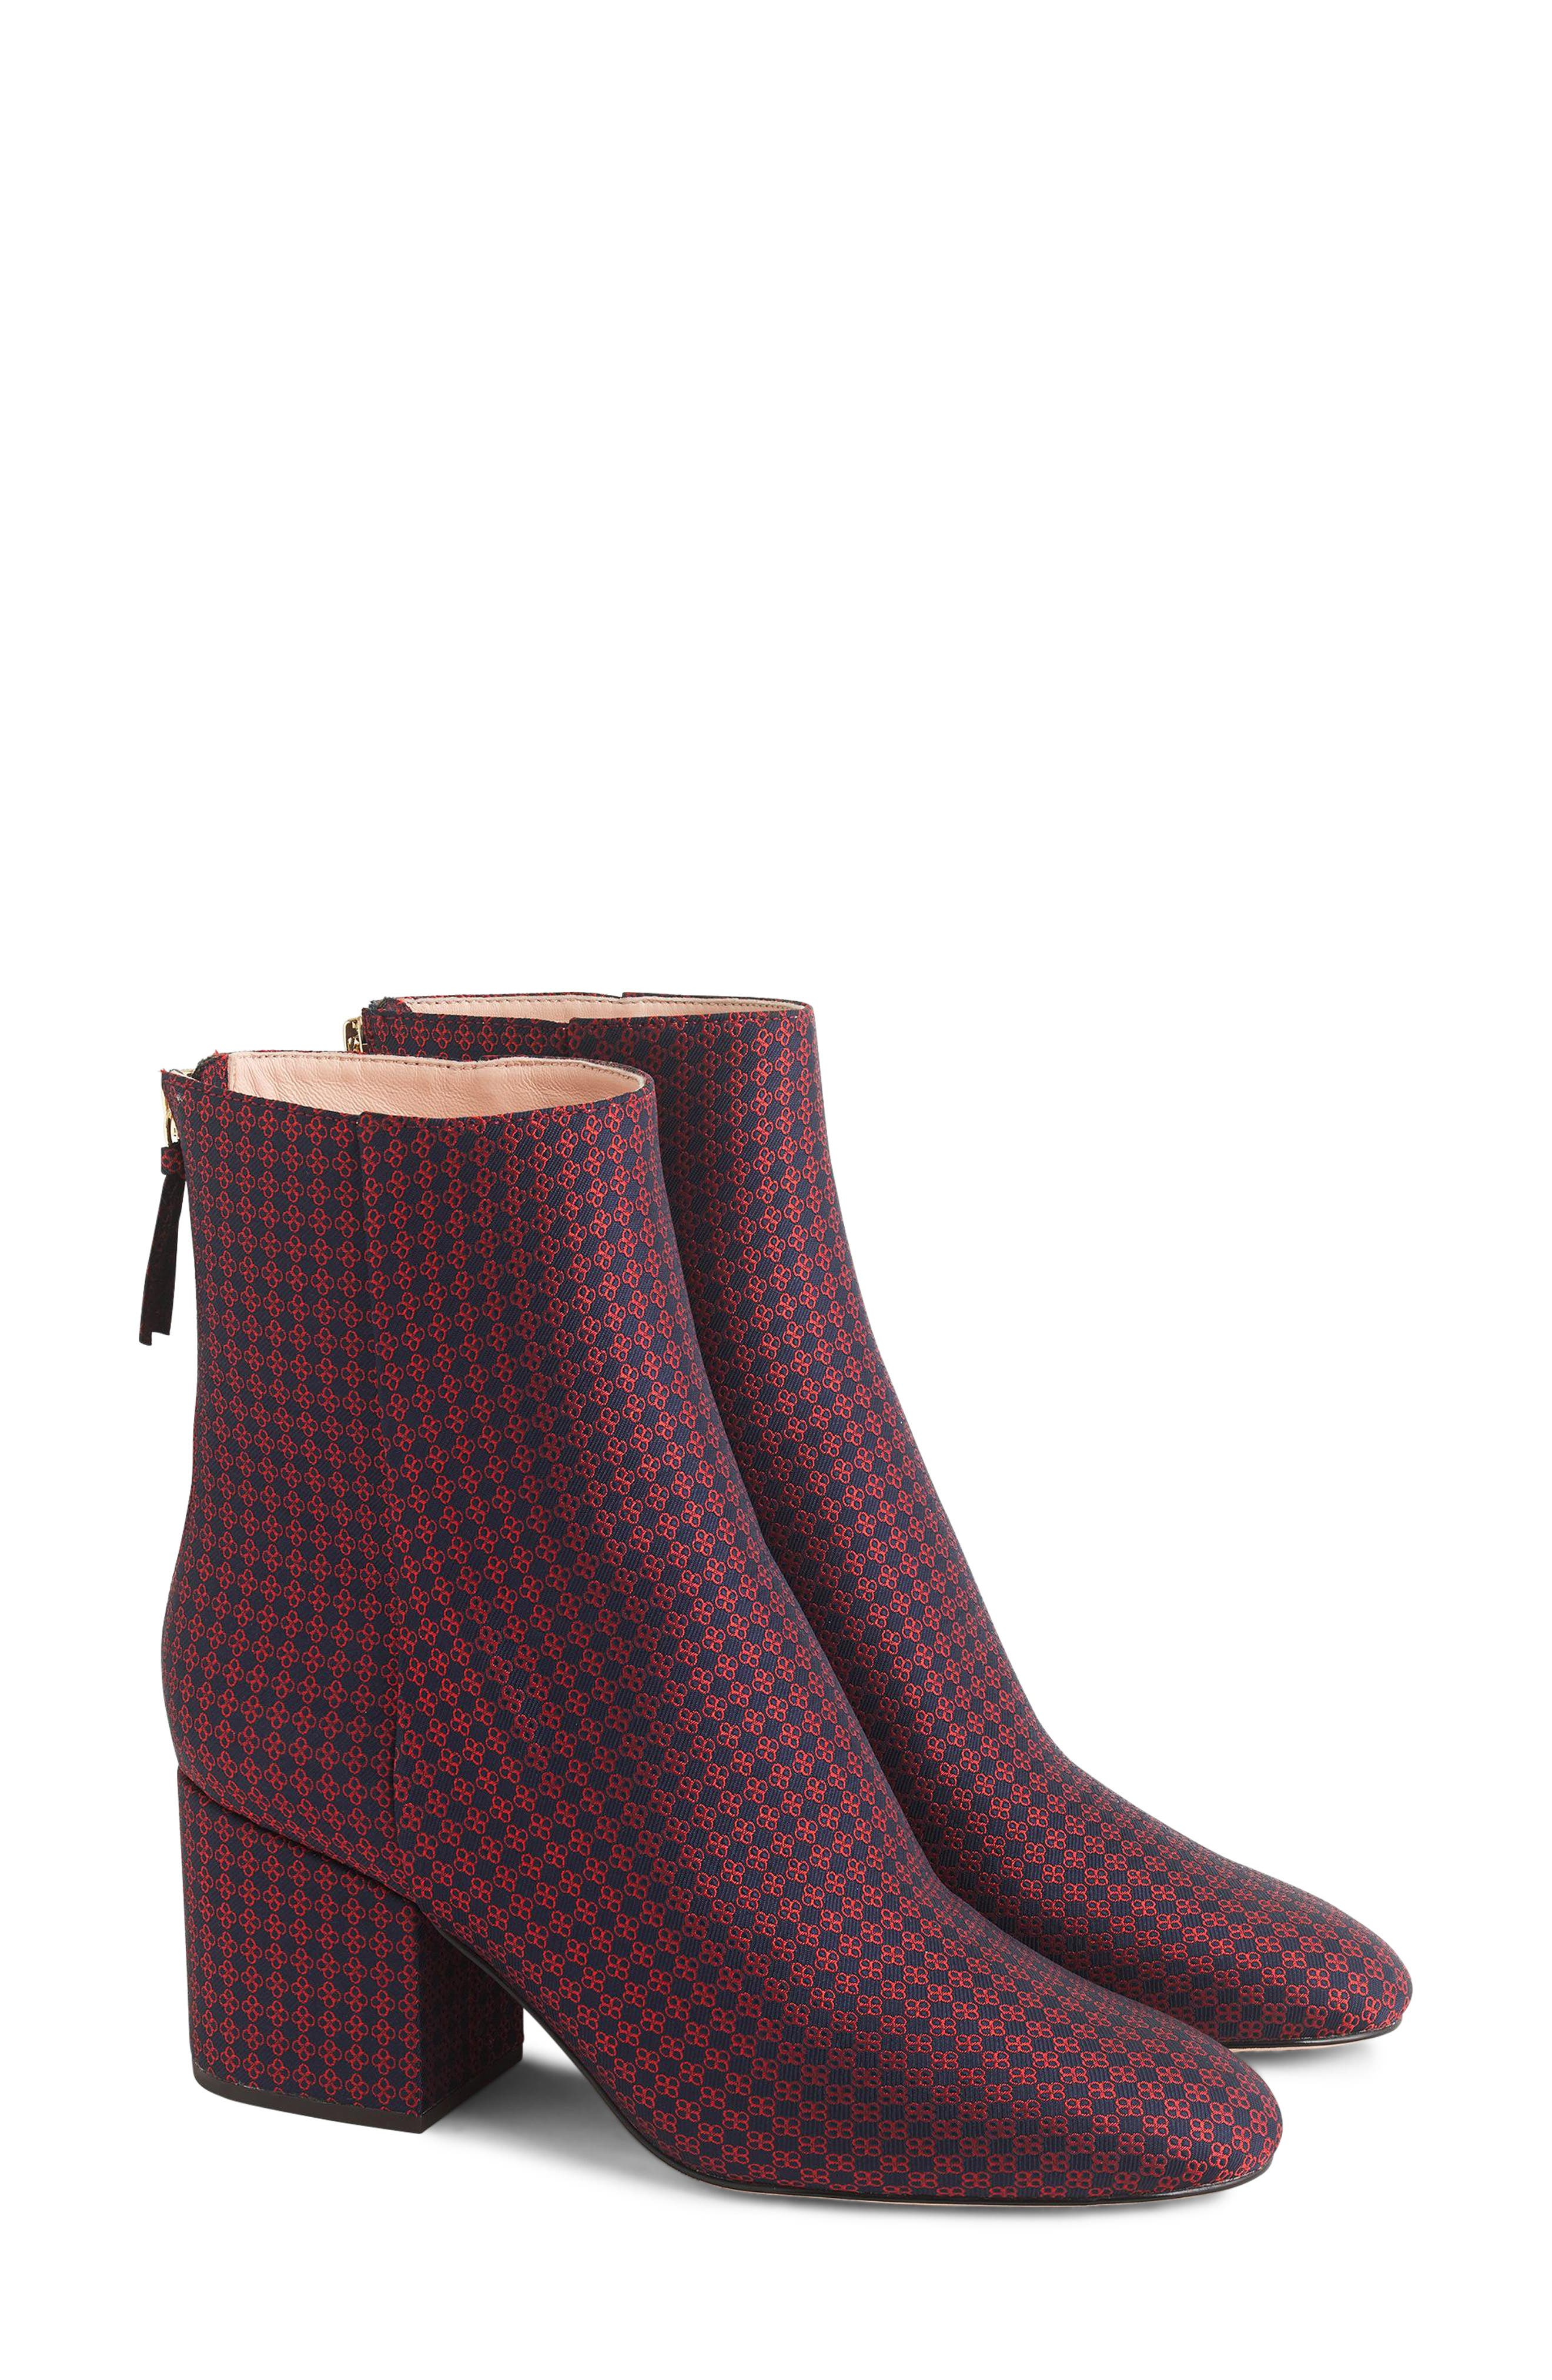 J.CREW Maya Ankle Bootie, Main, color, NAVY/ RED PLAID